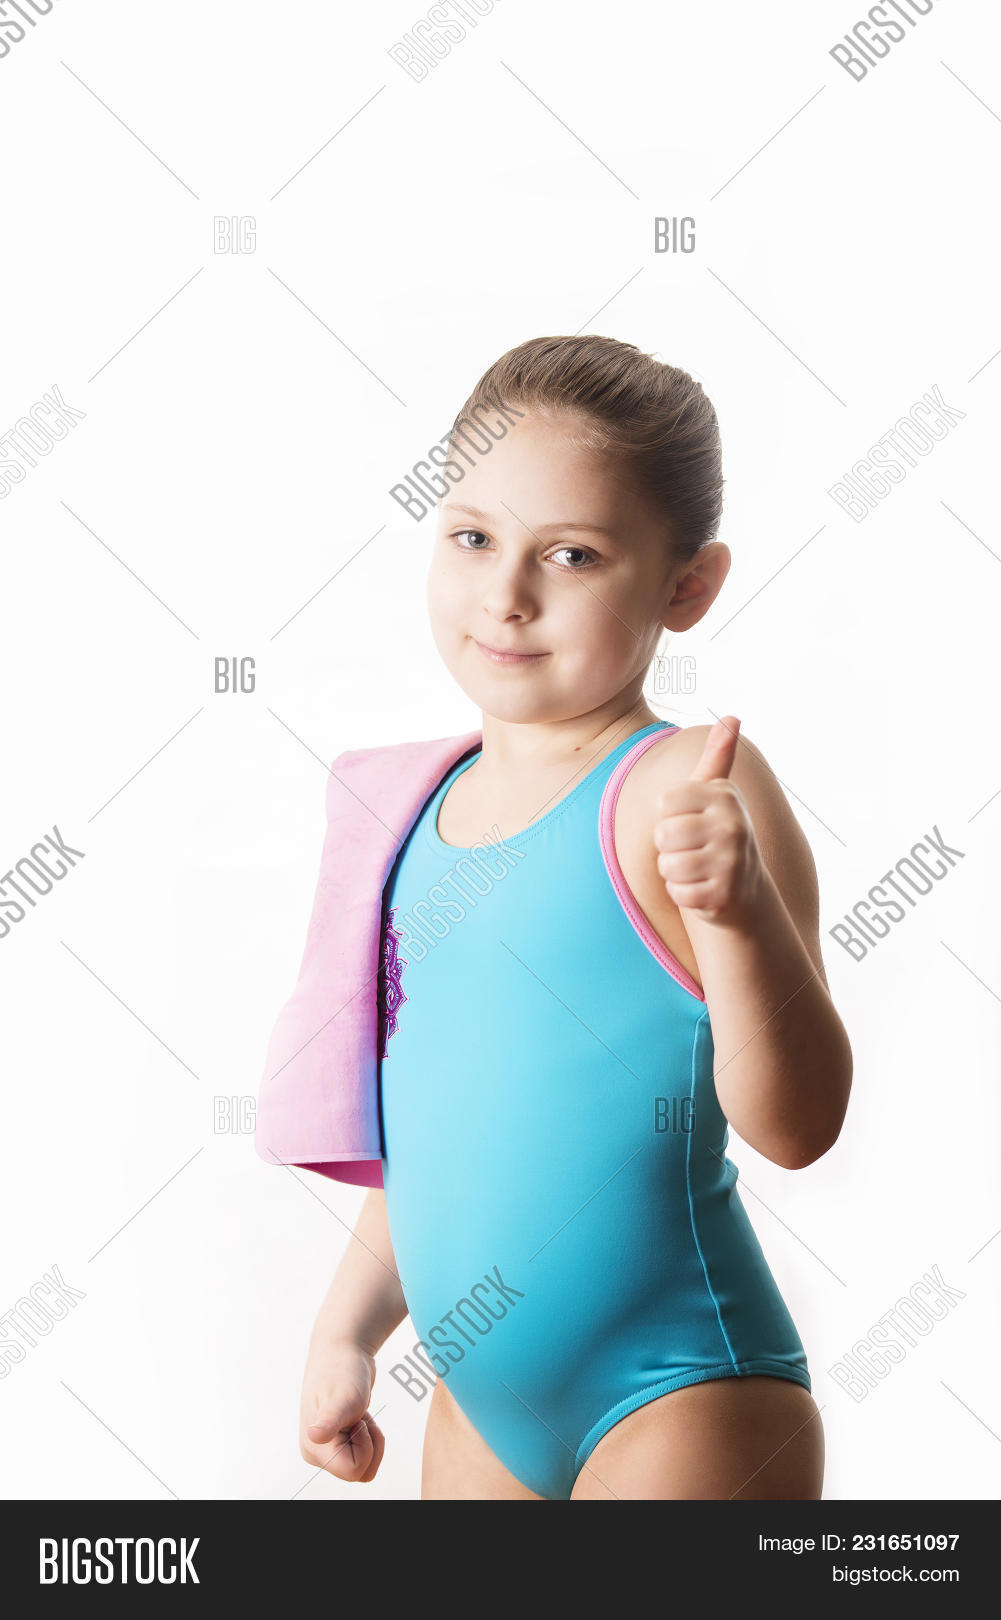 9c45dfe4d16 Swimmer: Little 7 Years Old Cute Caucasian Girlie In Cyan Swimming Costume  With Pink Shammy